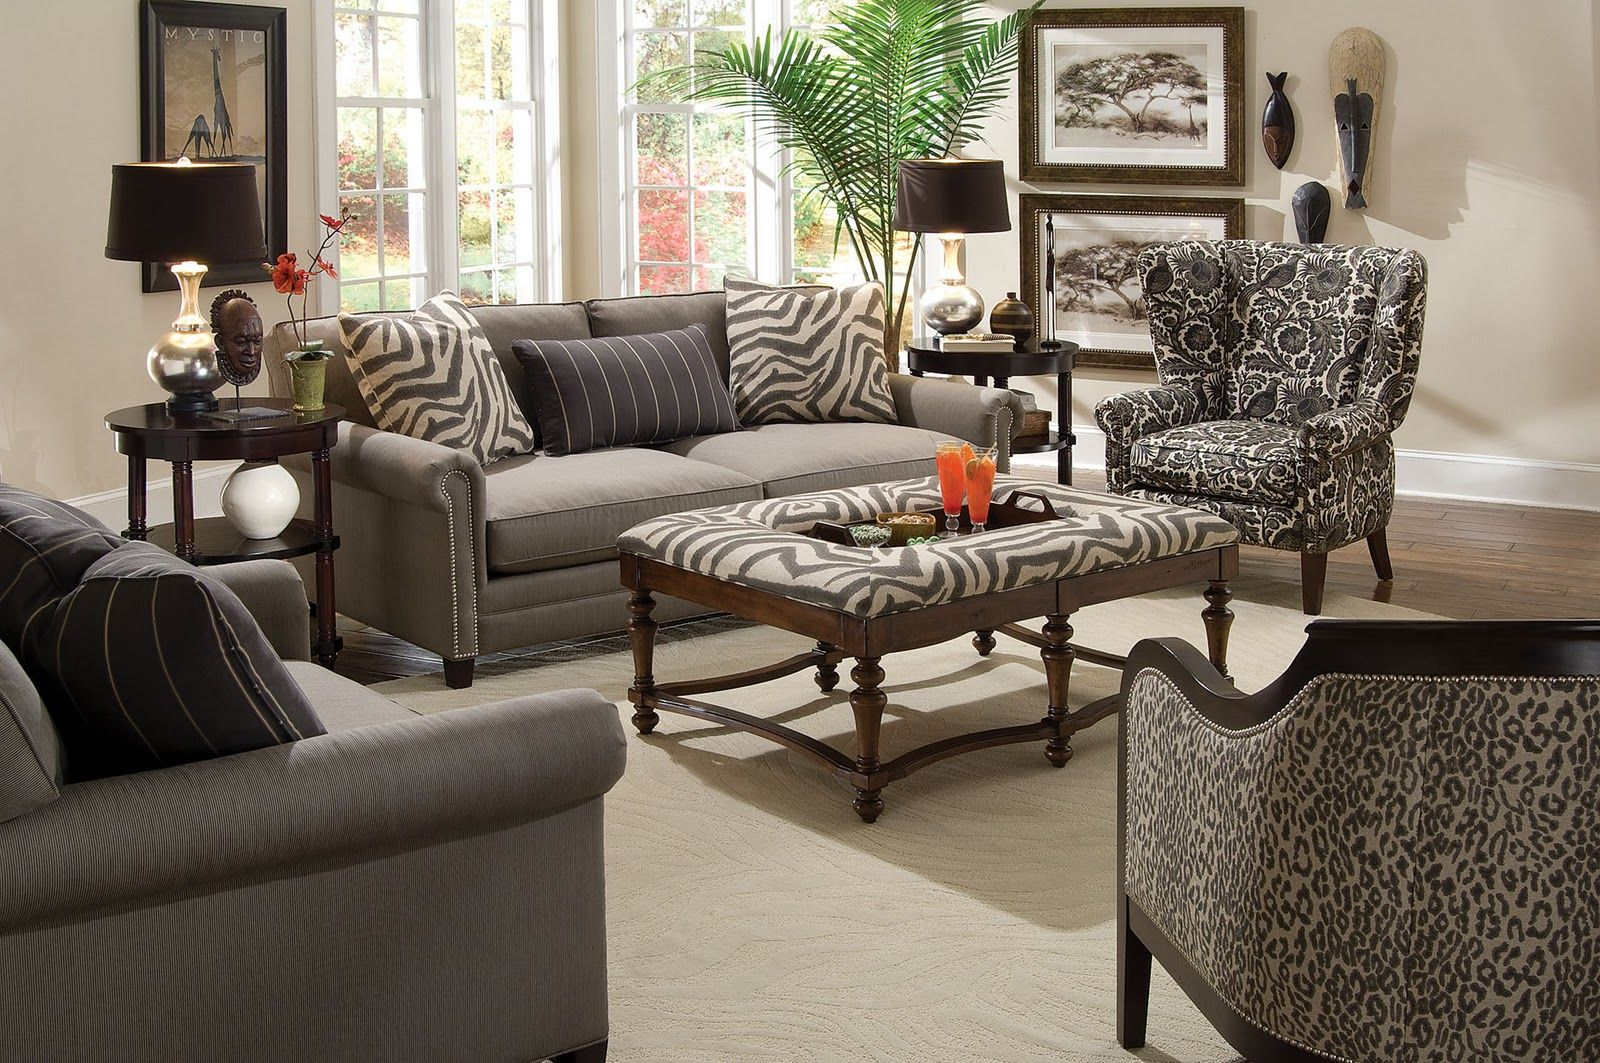 Plano Tx famous furniture store MFurniture provides excellent ...